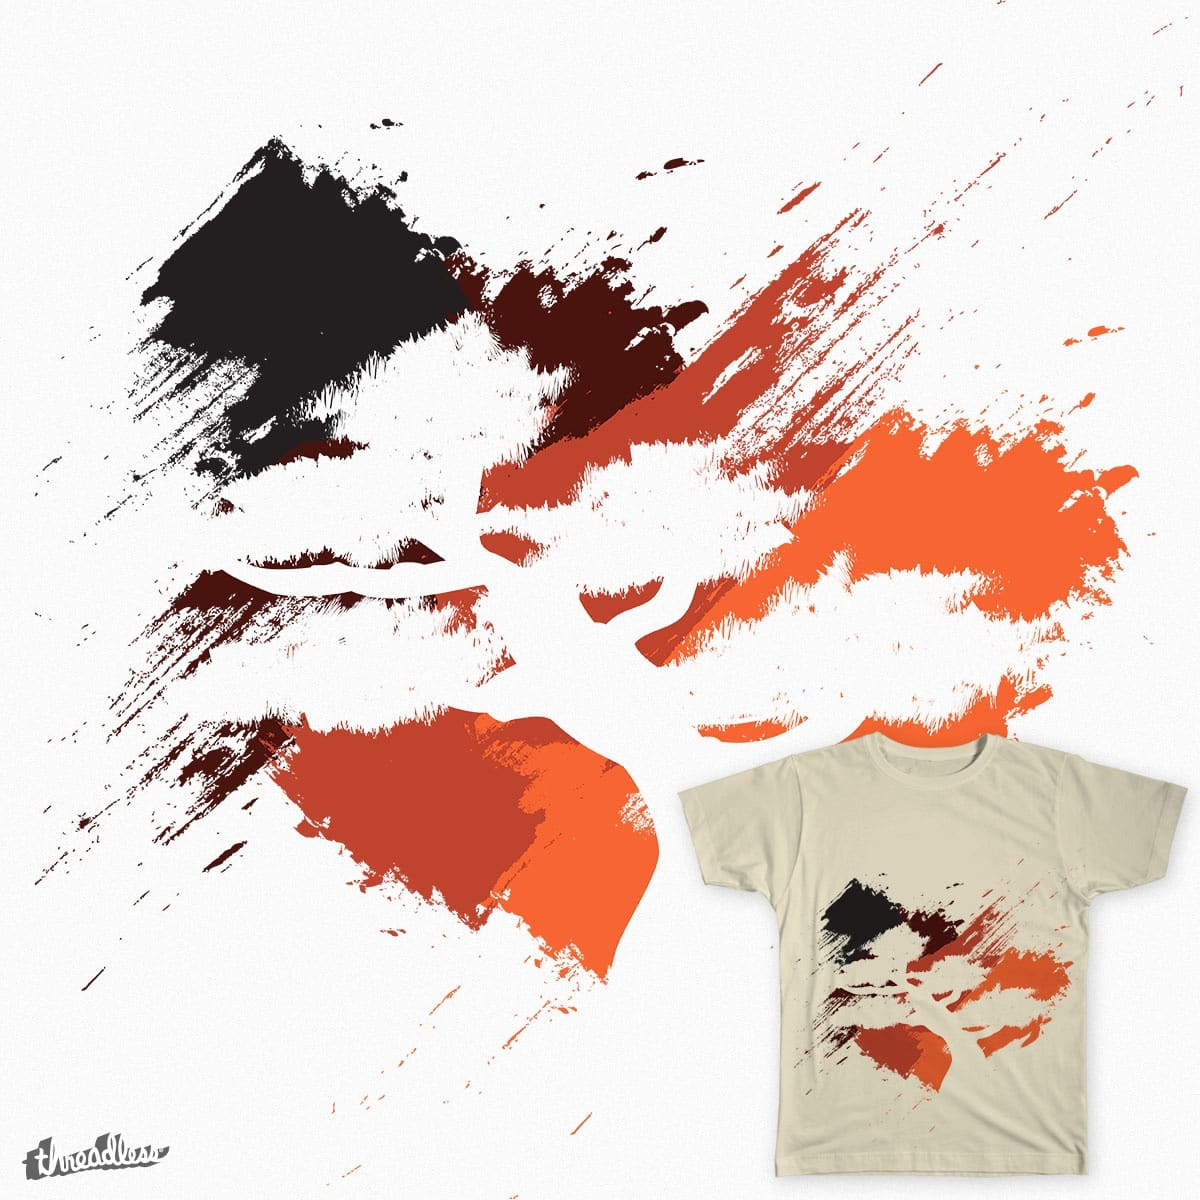 BonsaiSunSet by Ballaro24 on Threadless